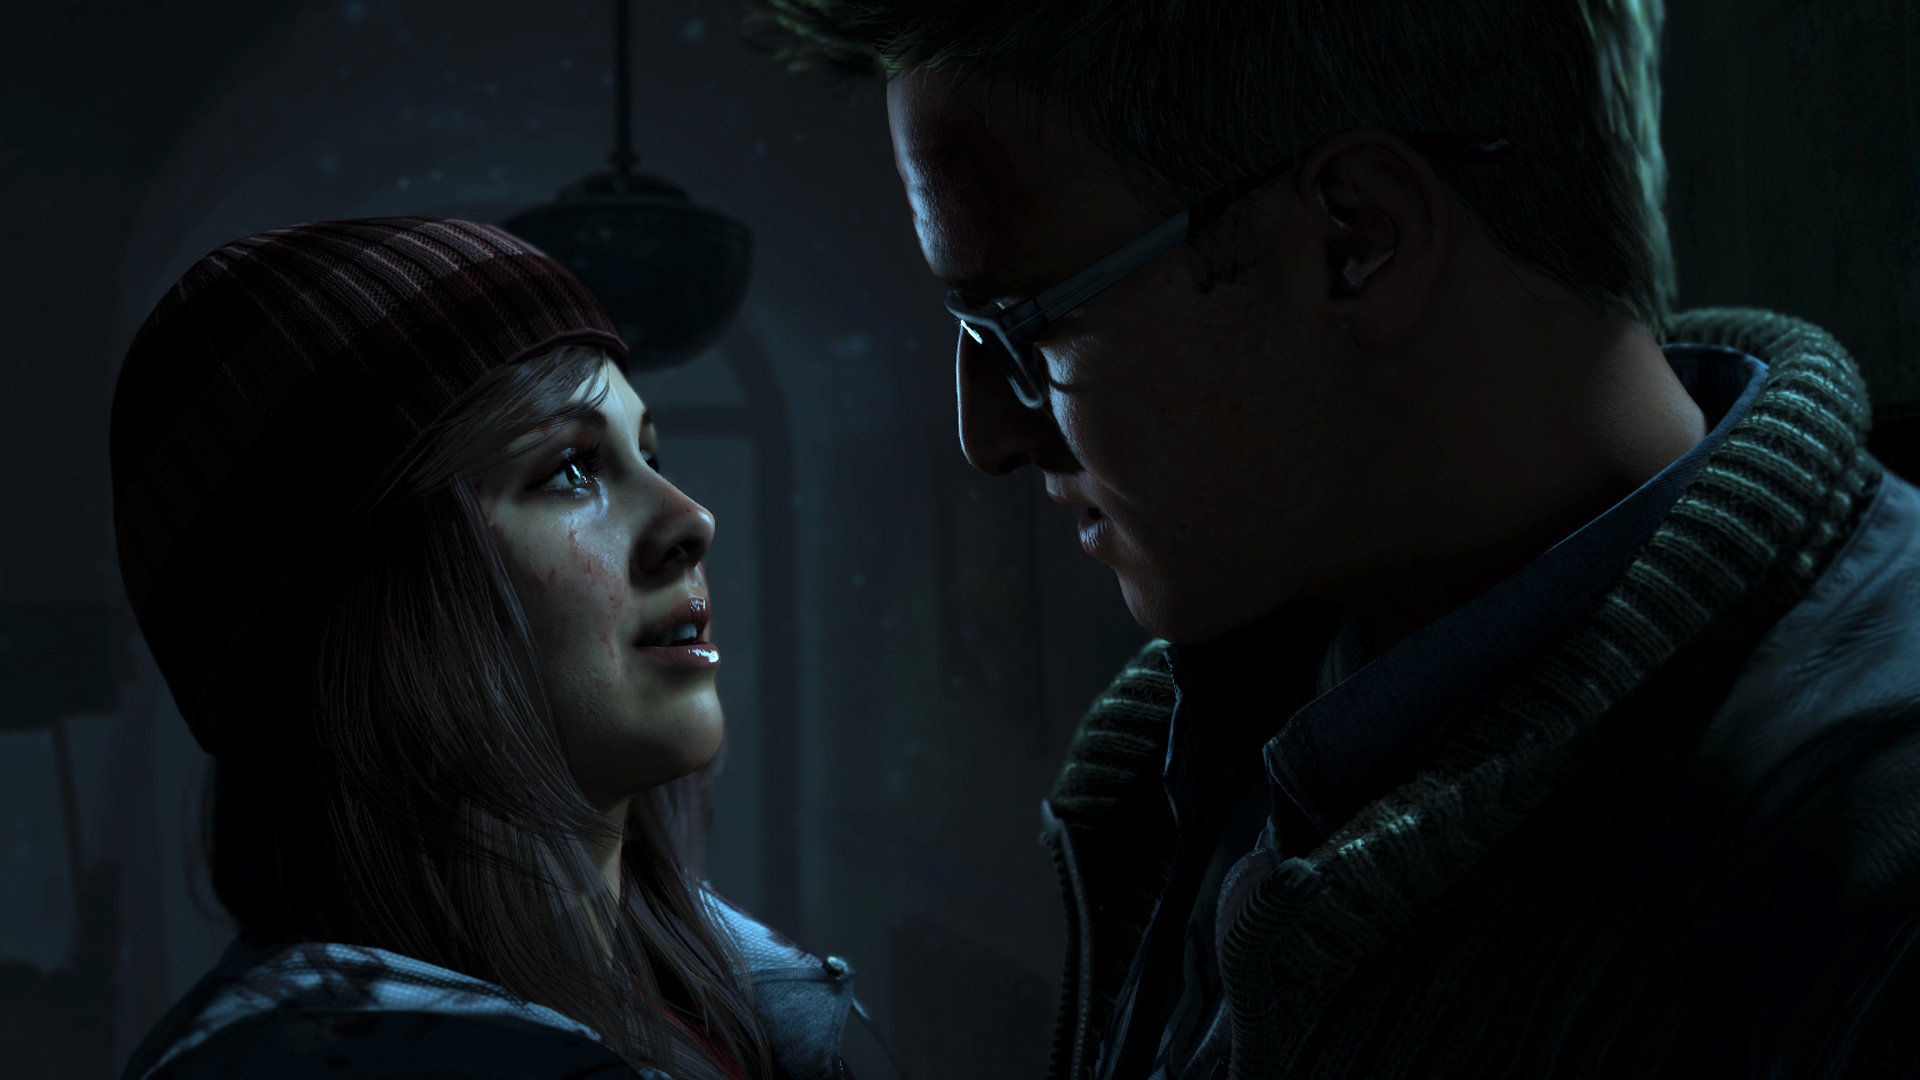 until-dawn-screenshot-05-ps4-us-07aug14?